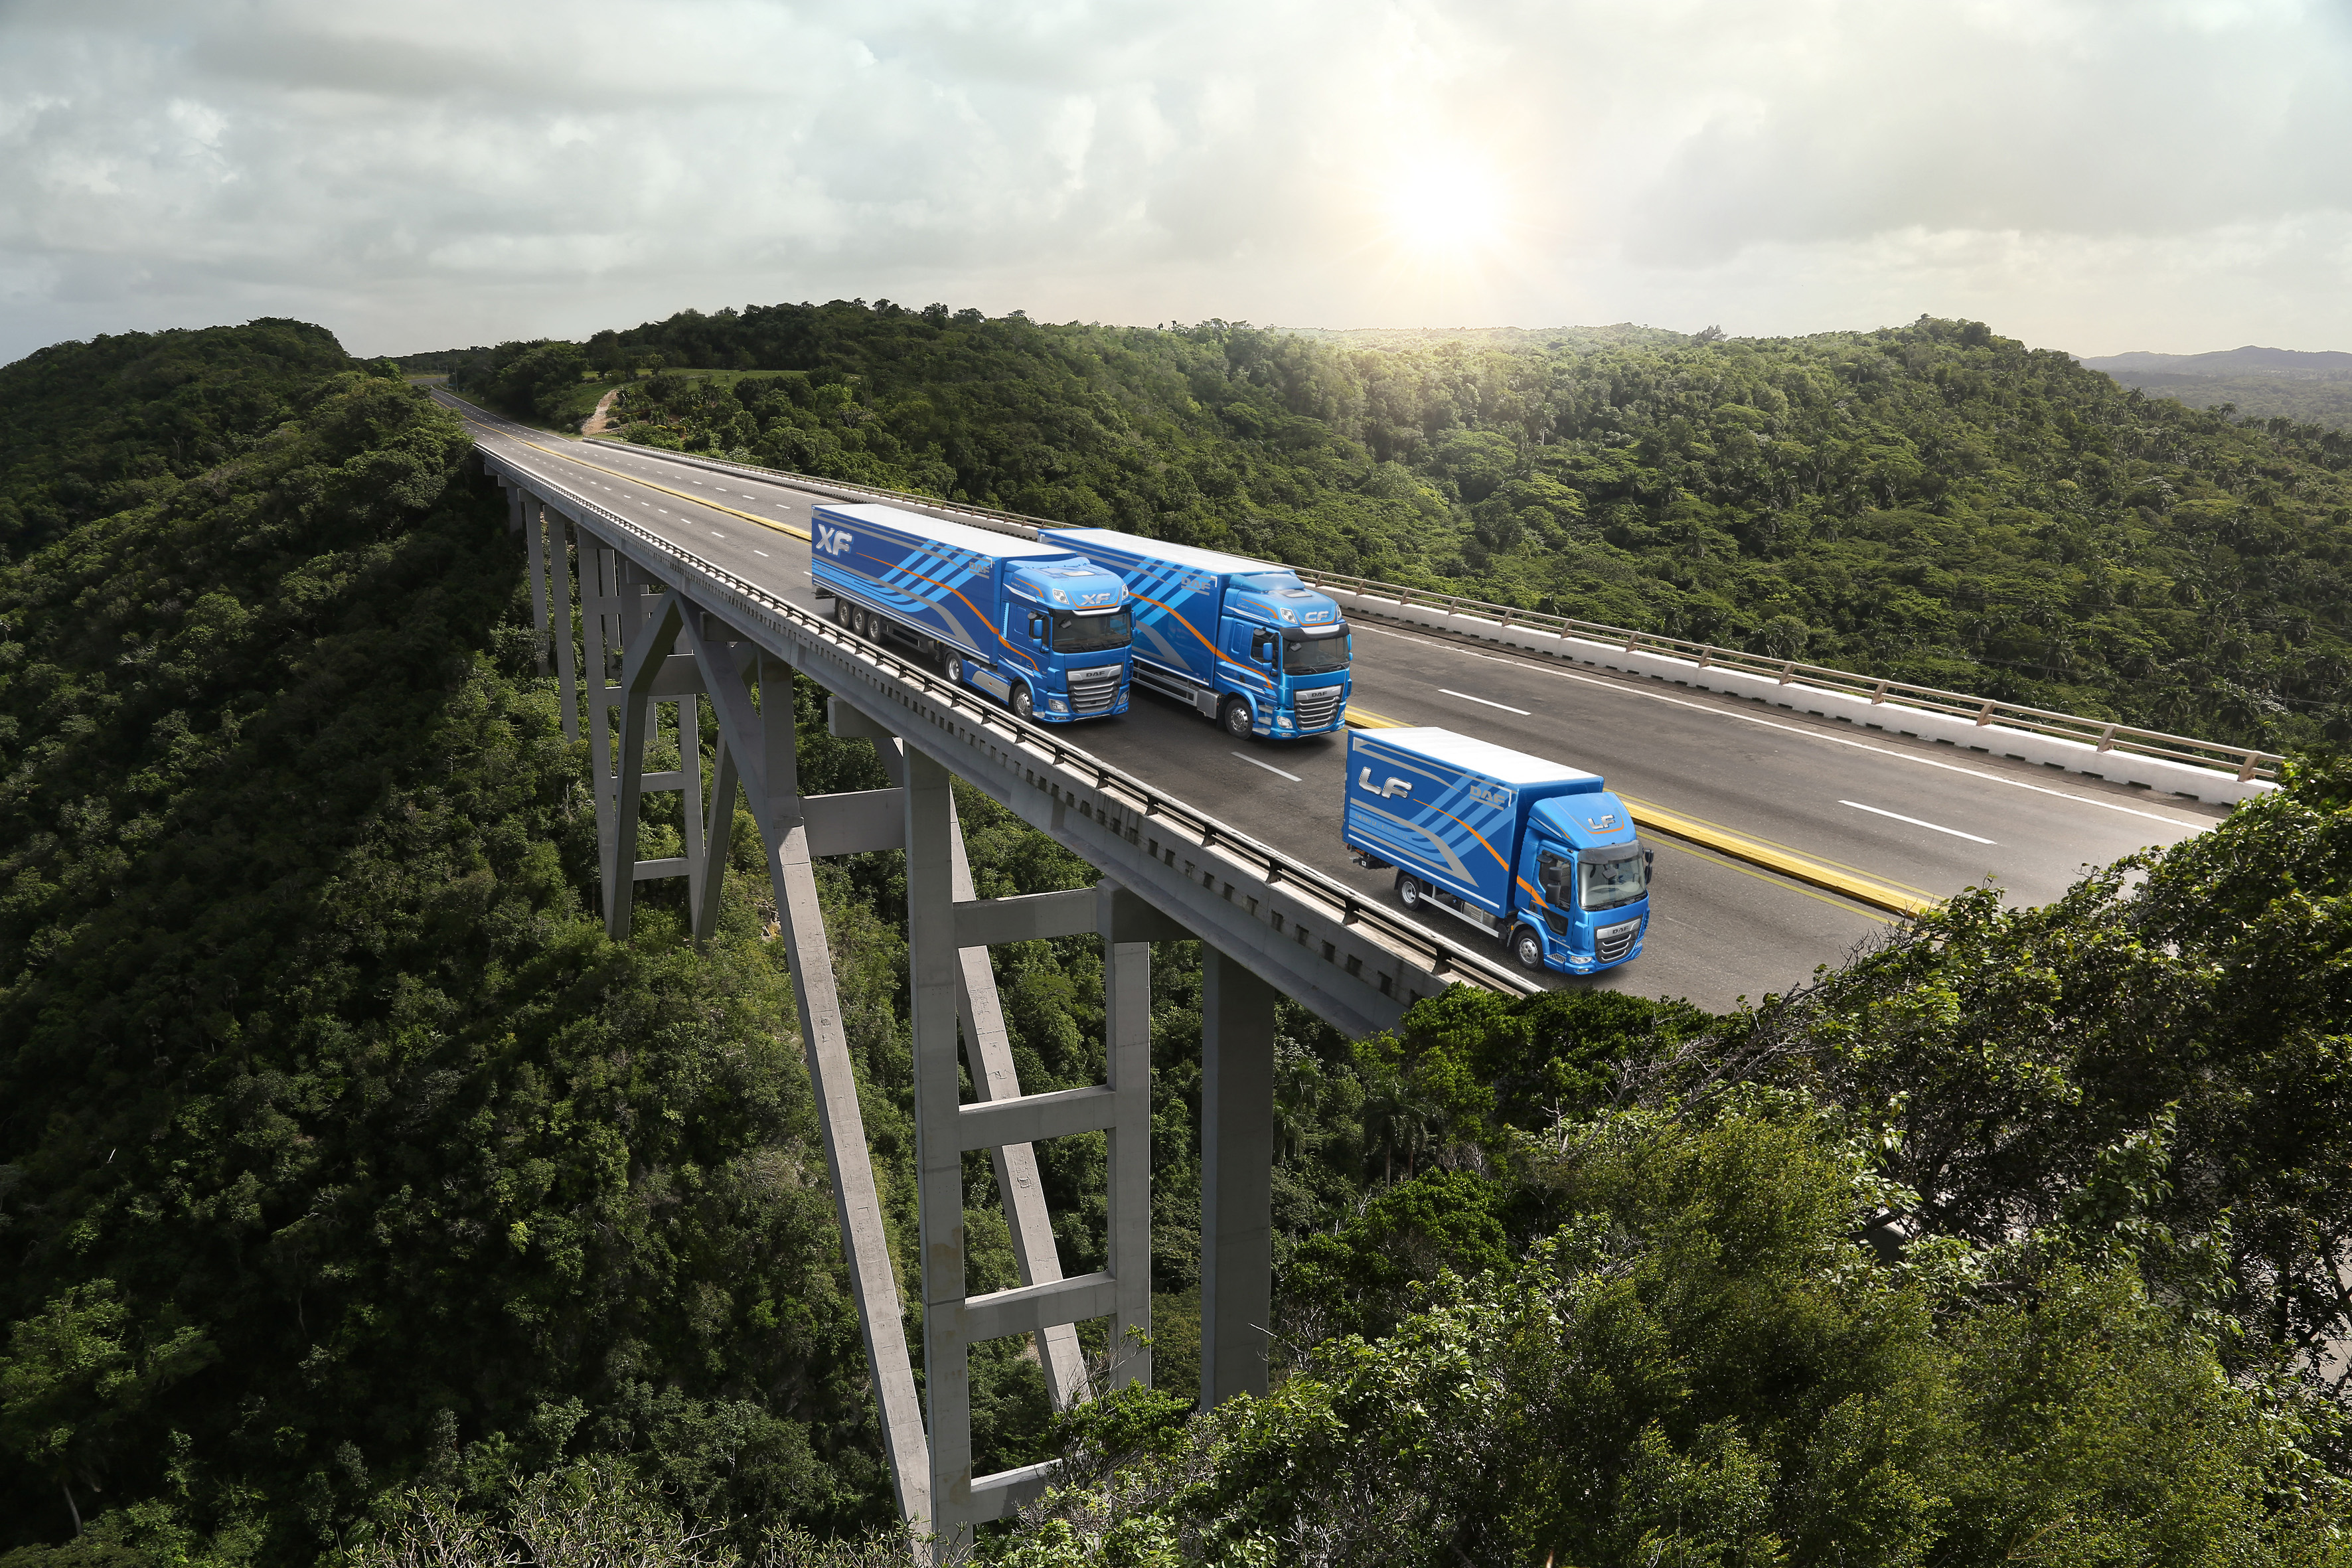 DAF proud campagne image